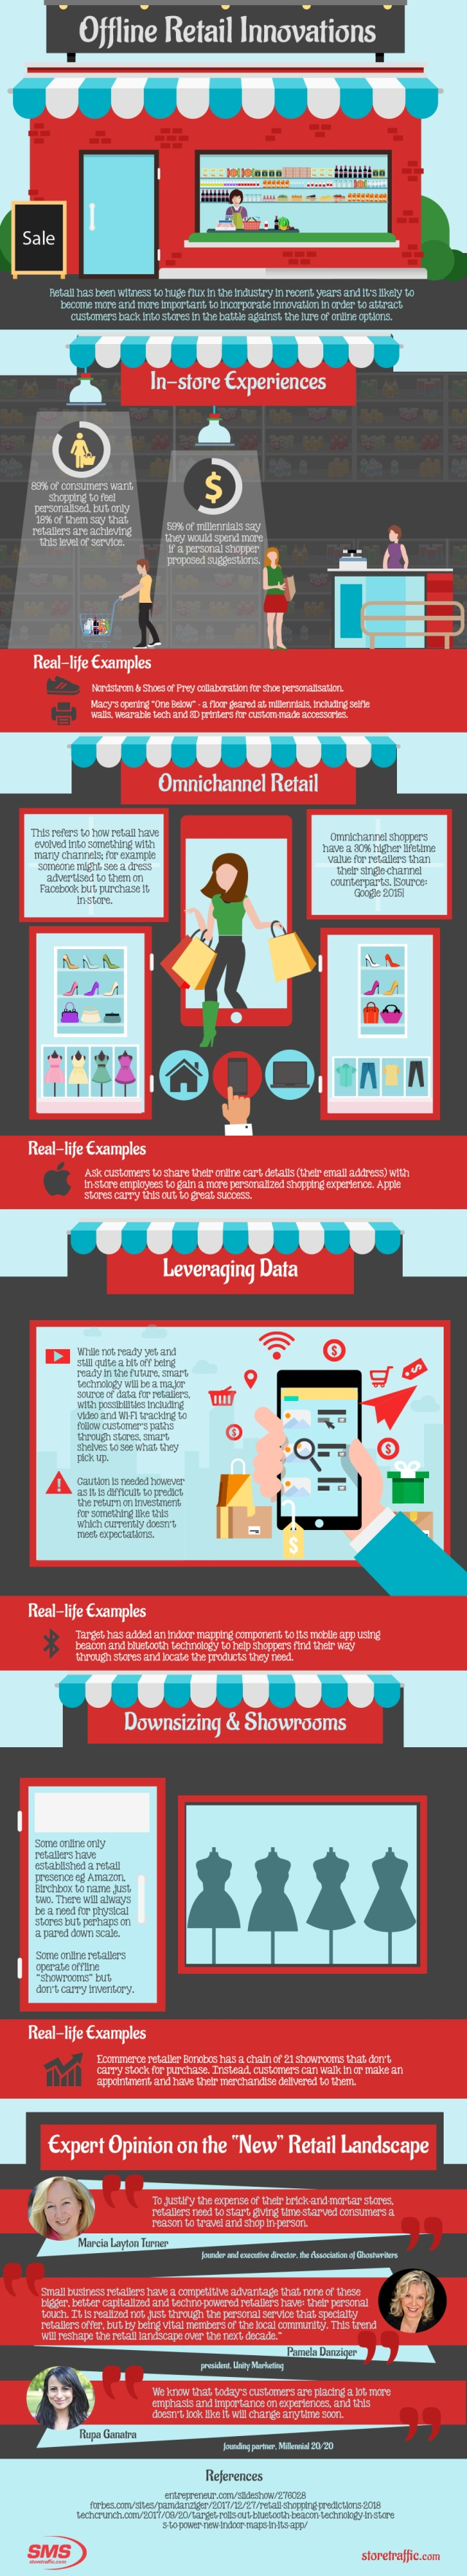 Offline Innovations in Retail – Infographic